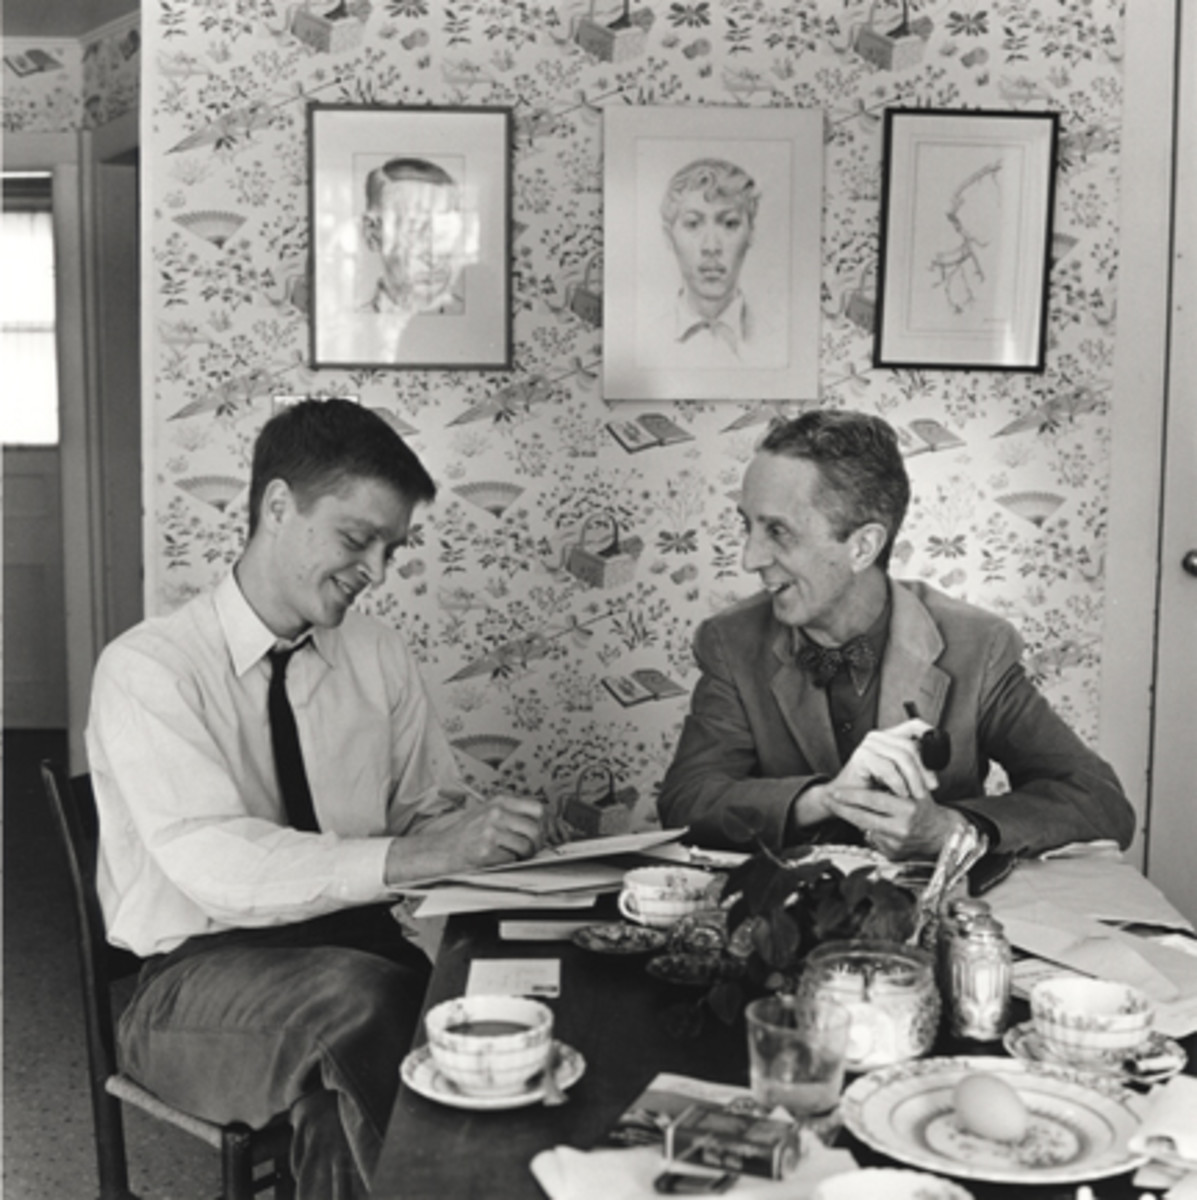 Norman Rockwell and his son working on autobiography